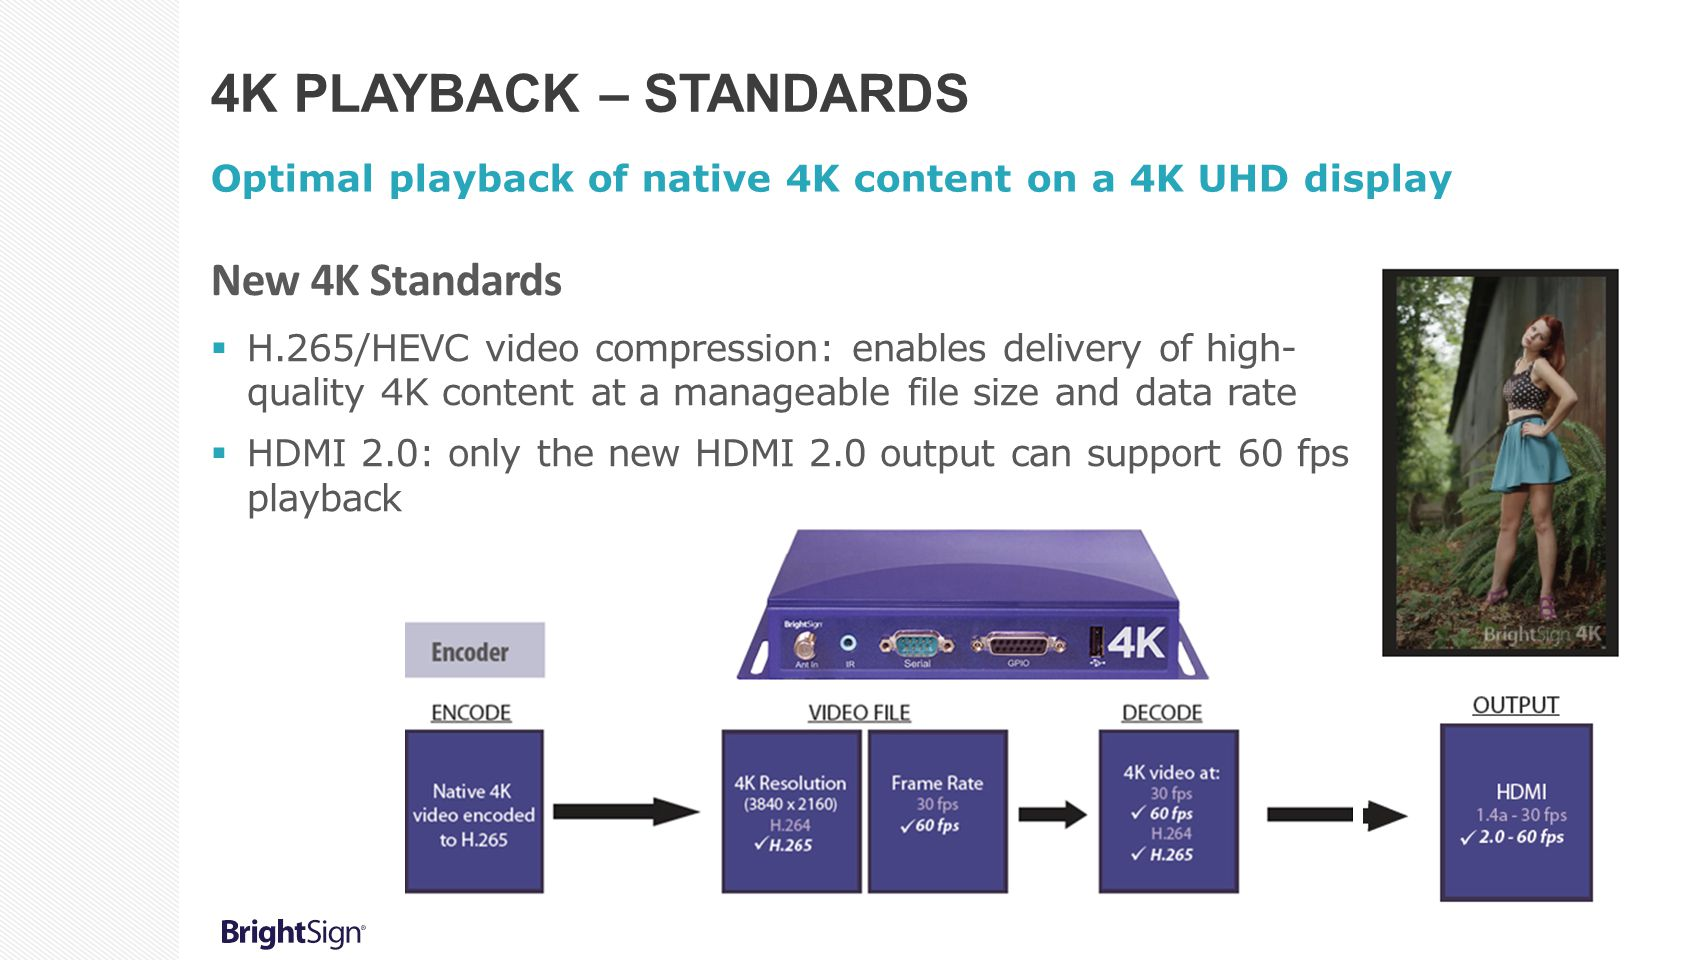 4K PLAYBACK – STANDARDS Optimal playback of native 4K content on a 4K UHD display New 4K Standards  H.265/HEVC video compression: enables delivery of high- quality 4K content at a manageable file size and data rate  HDMI 2.0: only the new HDMI 2.0 output can support 60 fps playback